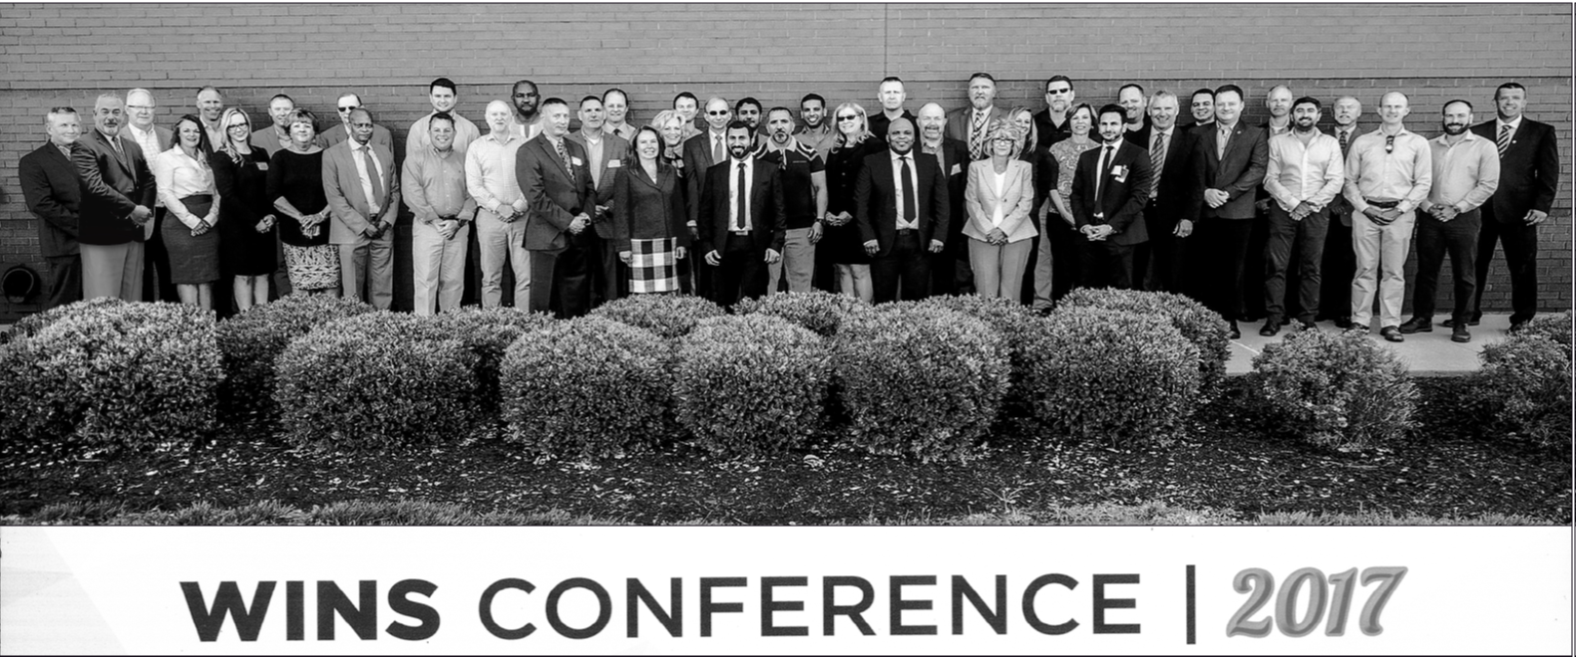 WINS Conference A